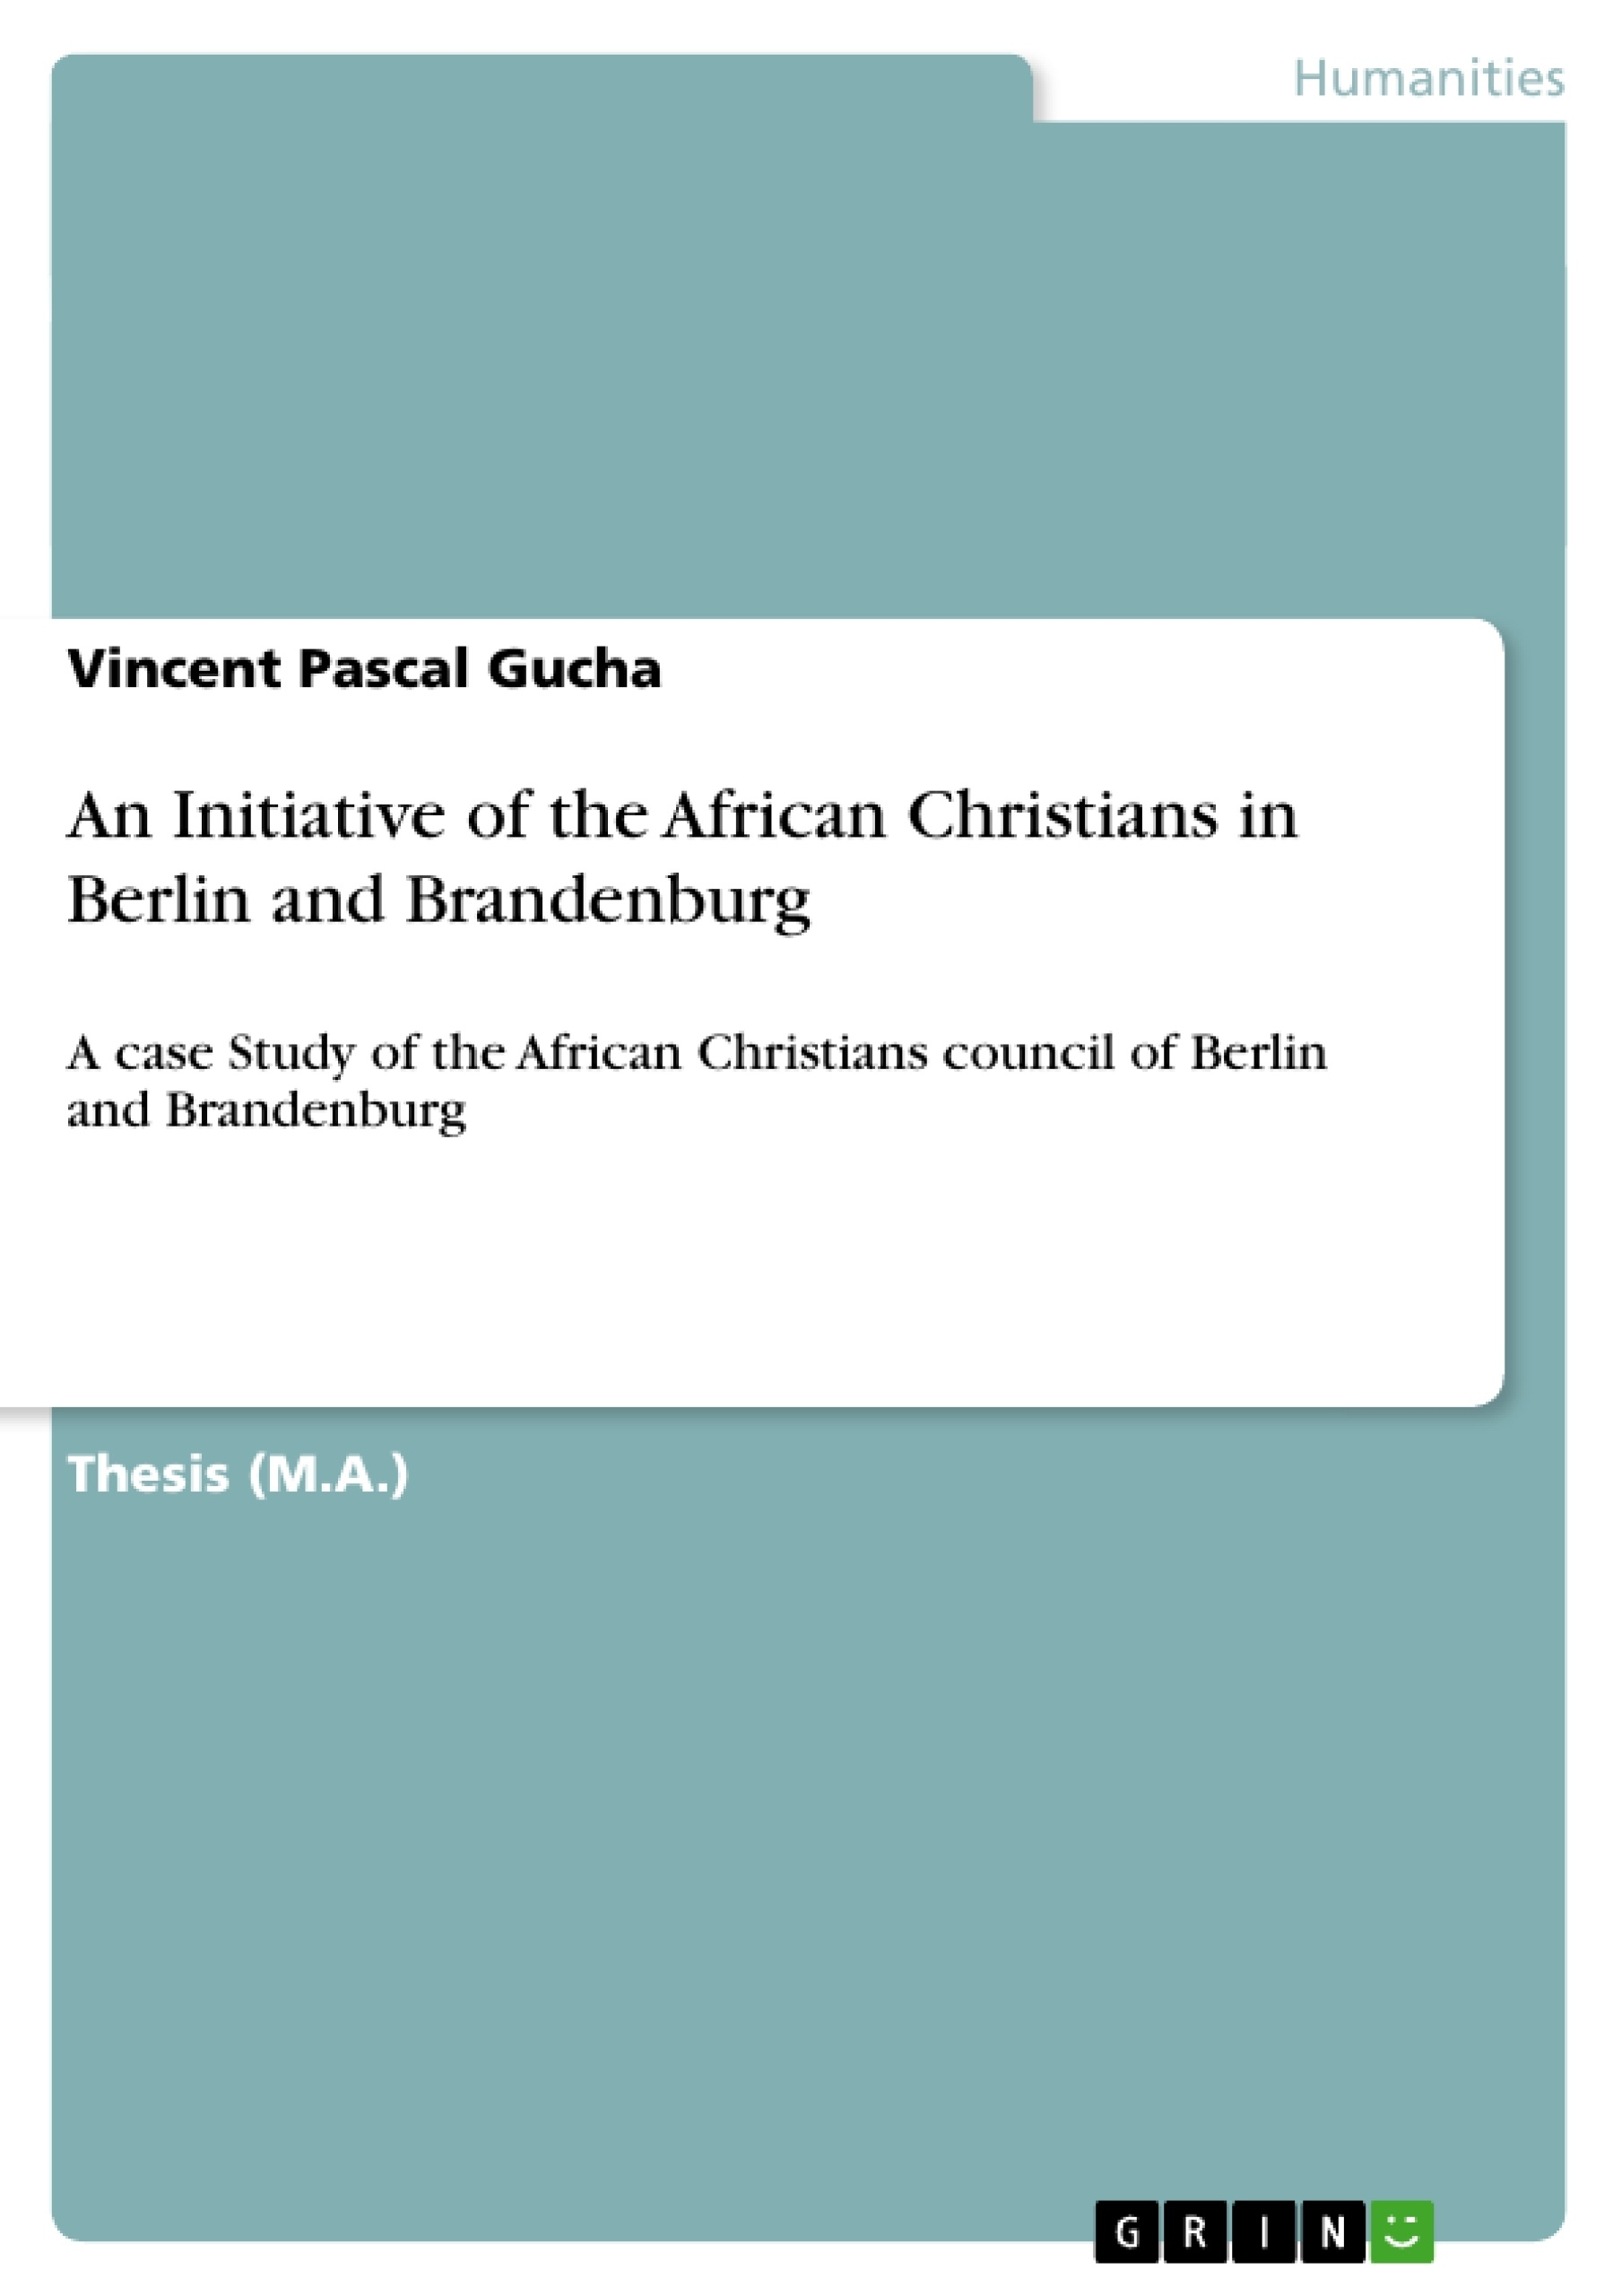 Title: An Initiative of the African Christians in Berlin and Brandenburg